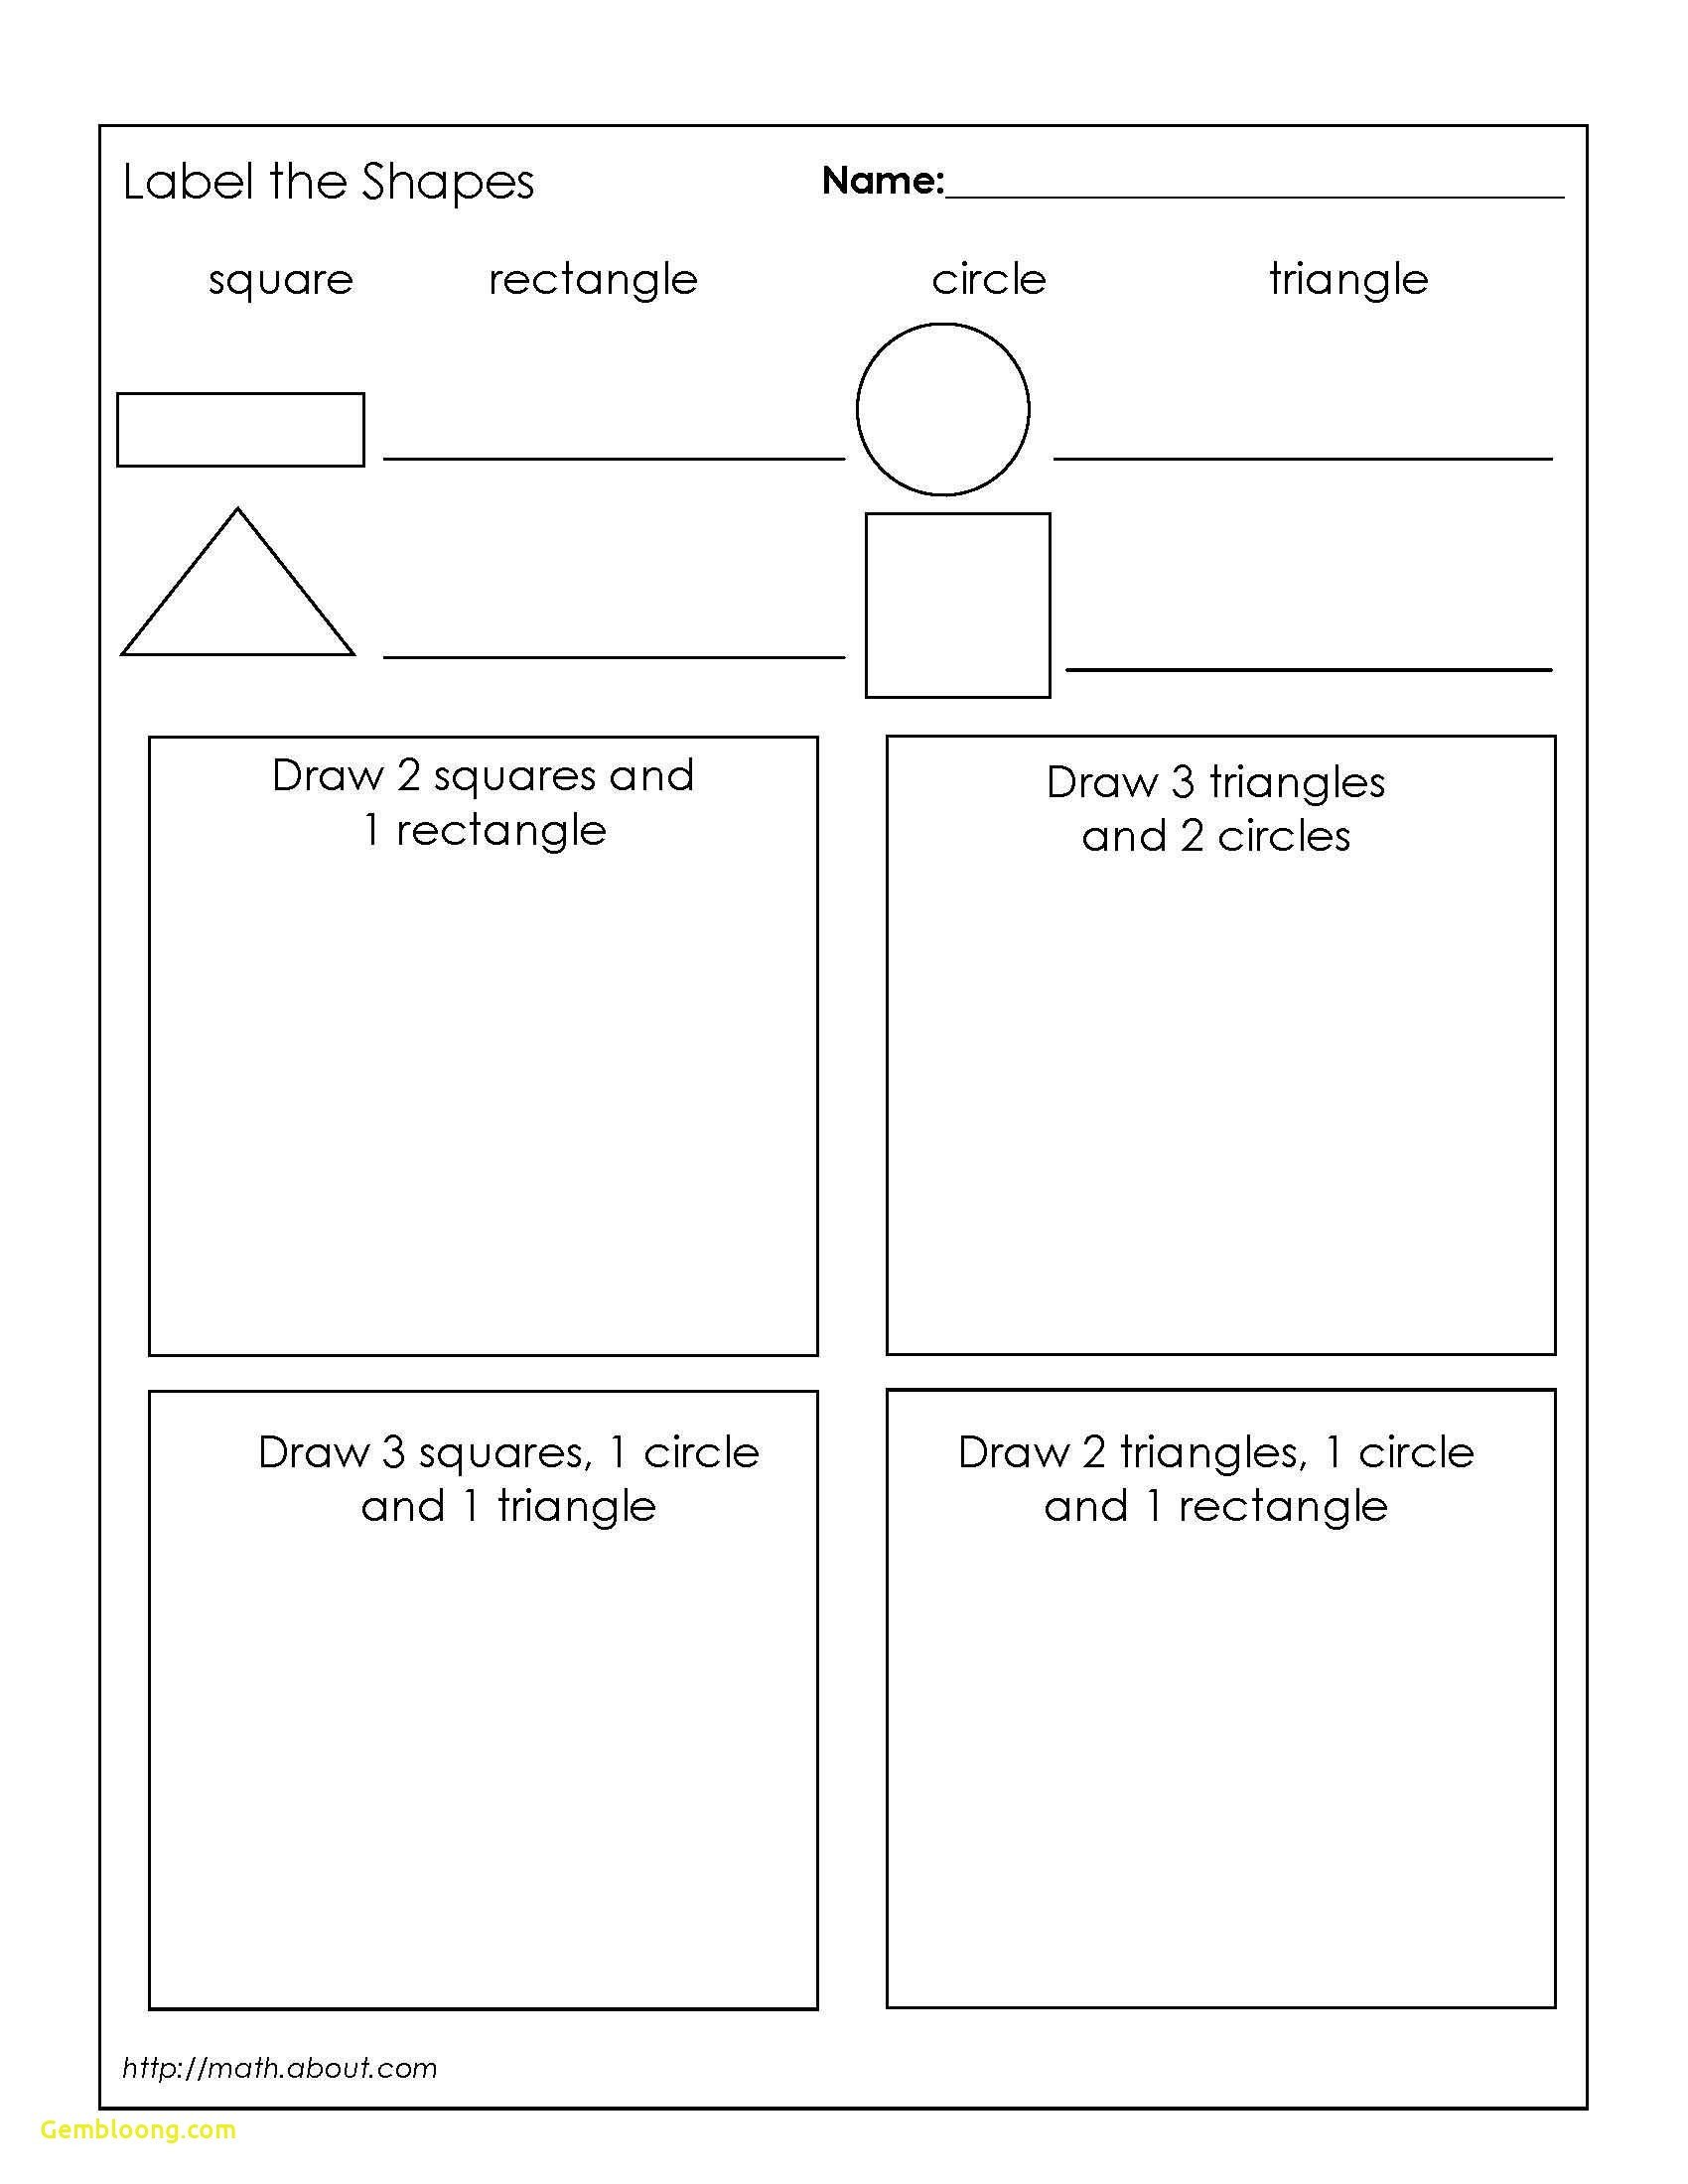 Geometric Shapes Worksheet 2nd Grade Inspirational Free Printable Addition Worksheets for 2nd